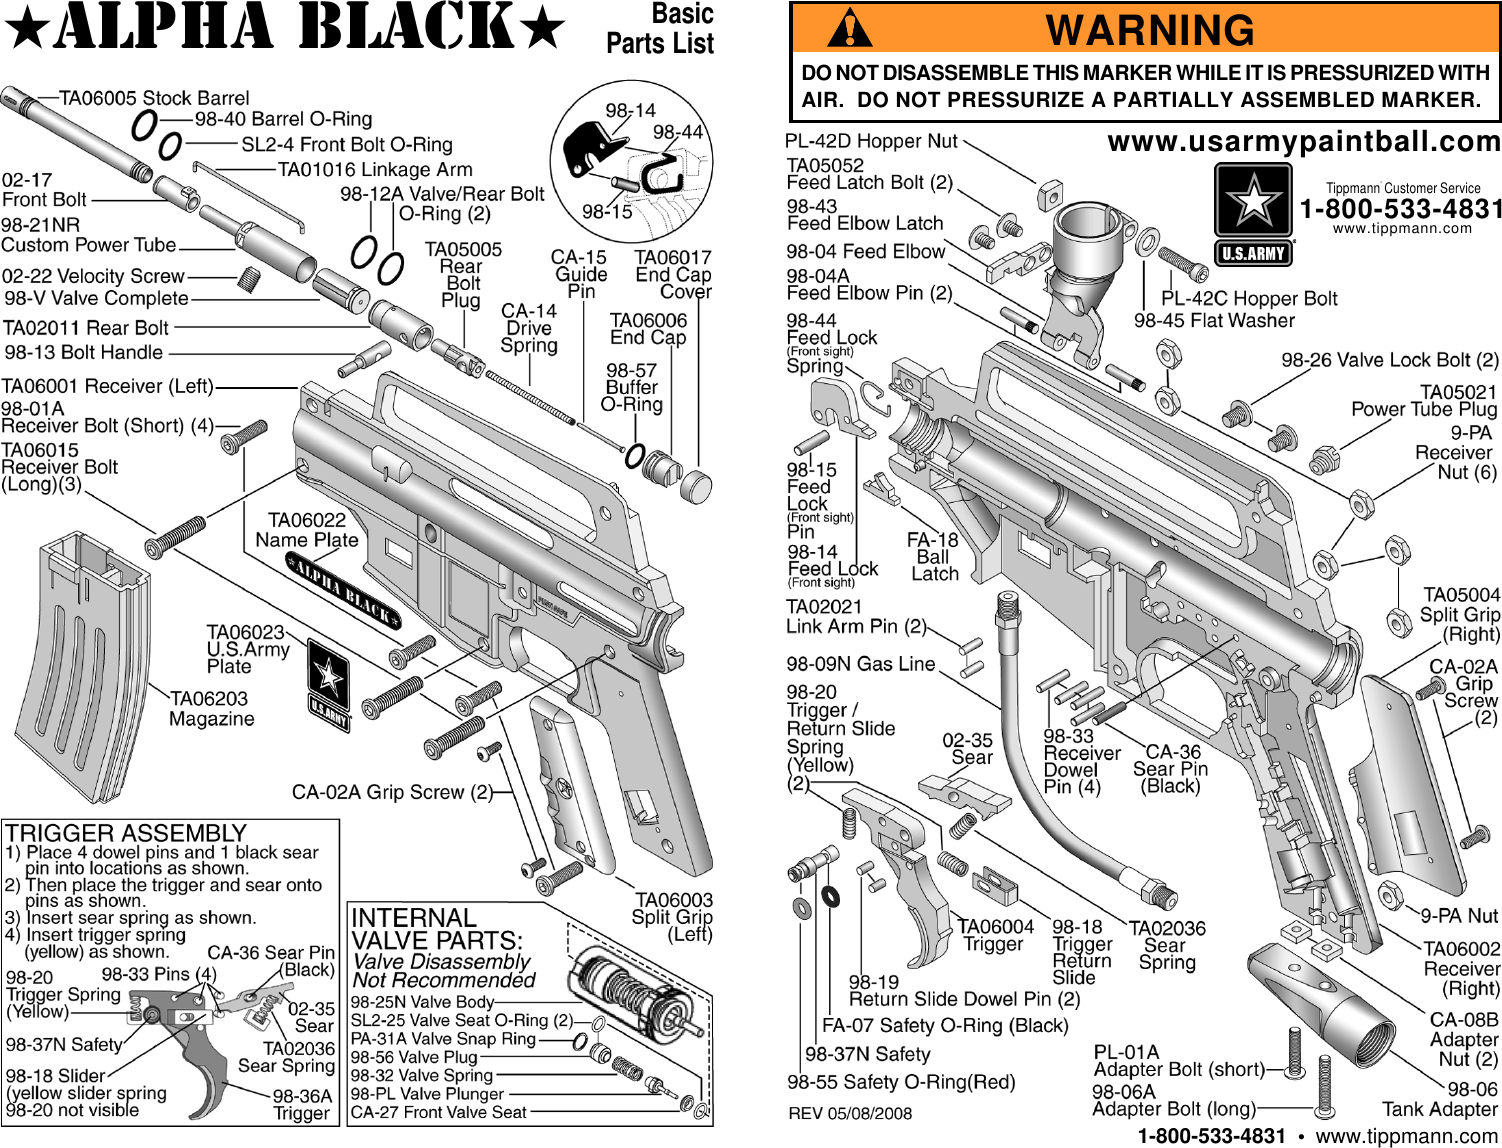 Tippmann Parts Diagram Trusted Wiring Diagrams X7 Phenom Mechanical V131129 Us Army Alpha Black Basic Users Manual 02 20 Mods